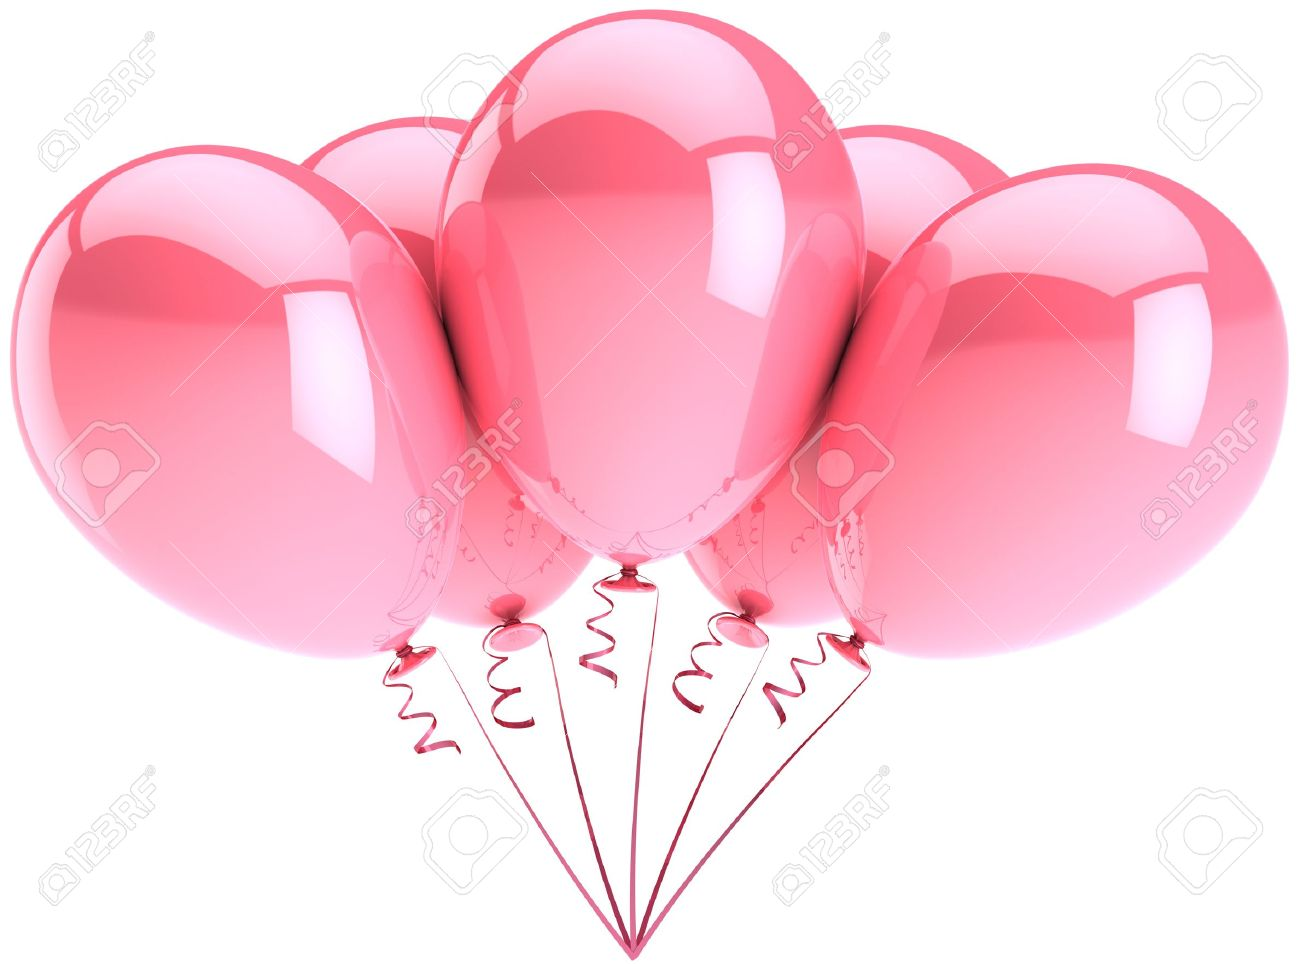 Party Balloons Five Colored Pink Romantic Wedding Birthday Decoration Tender Girlfriend Love Emotion Concept